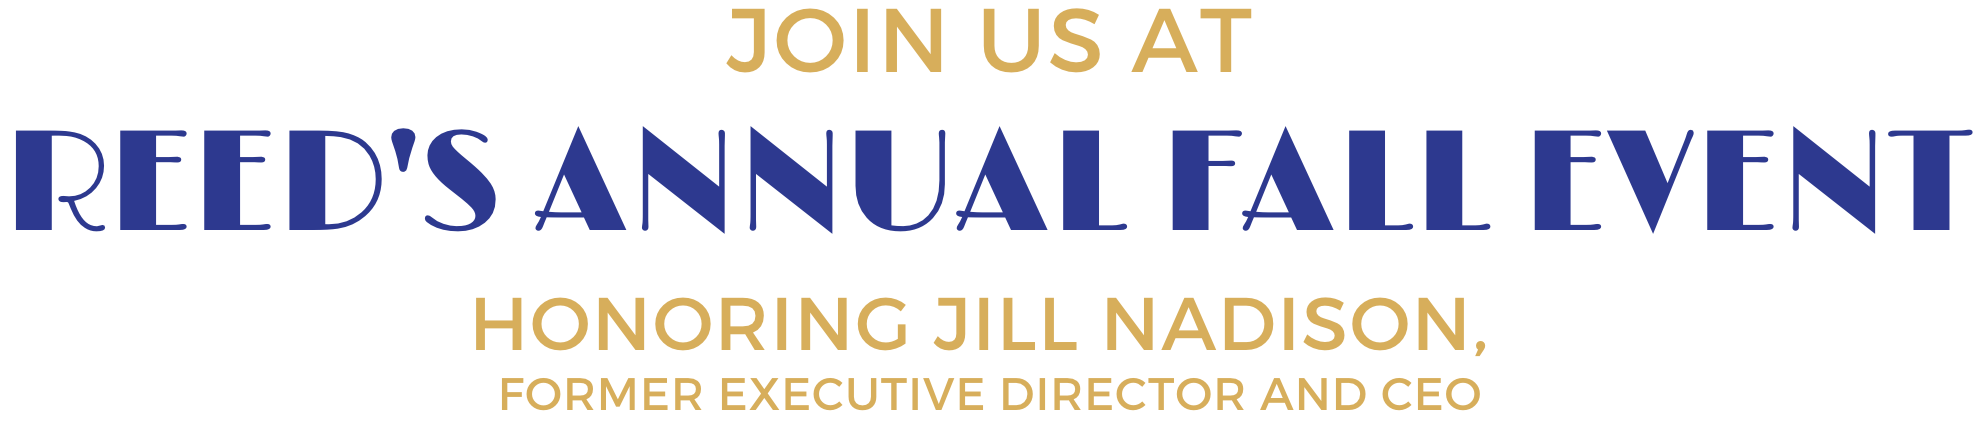 Join us at our Fall event honoring Jill Nadison, former Executive Director and CEO